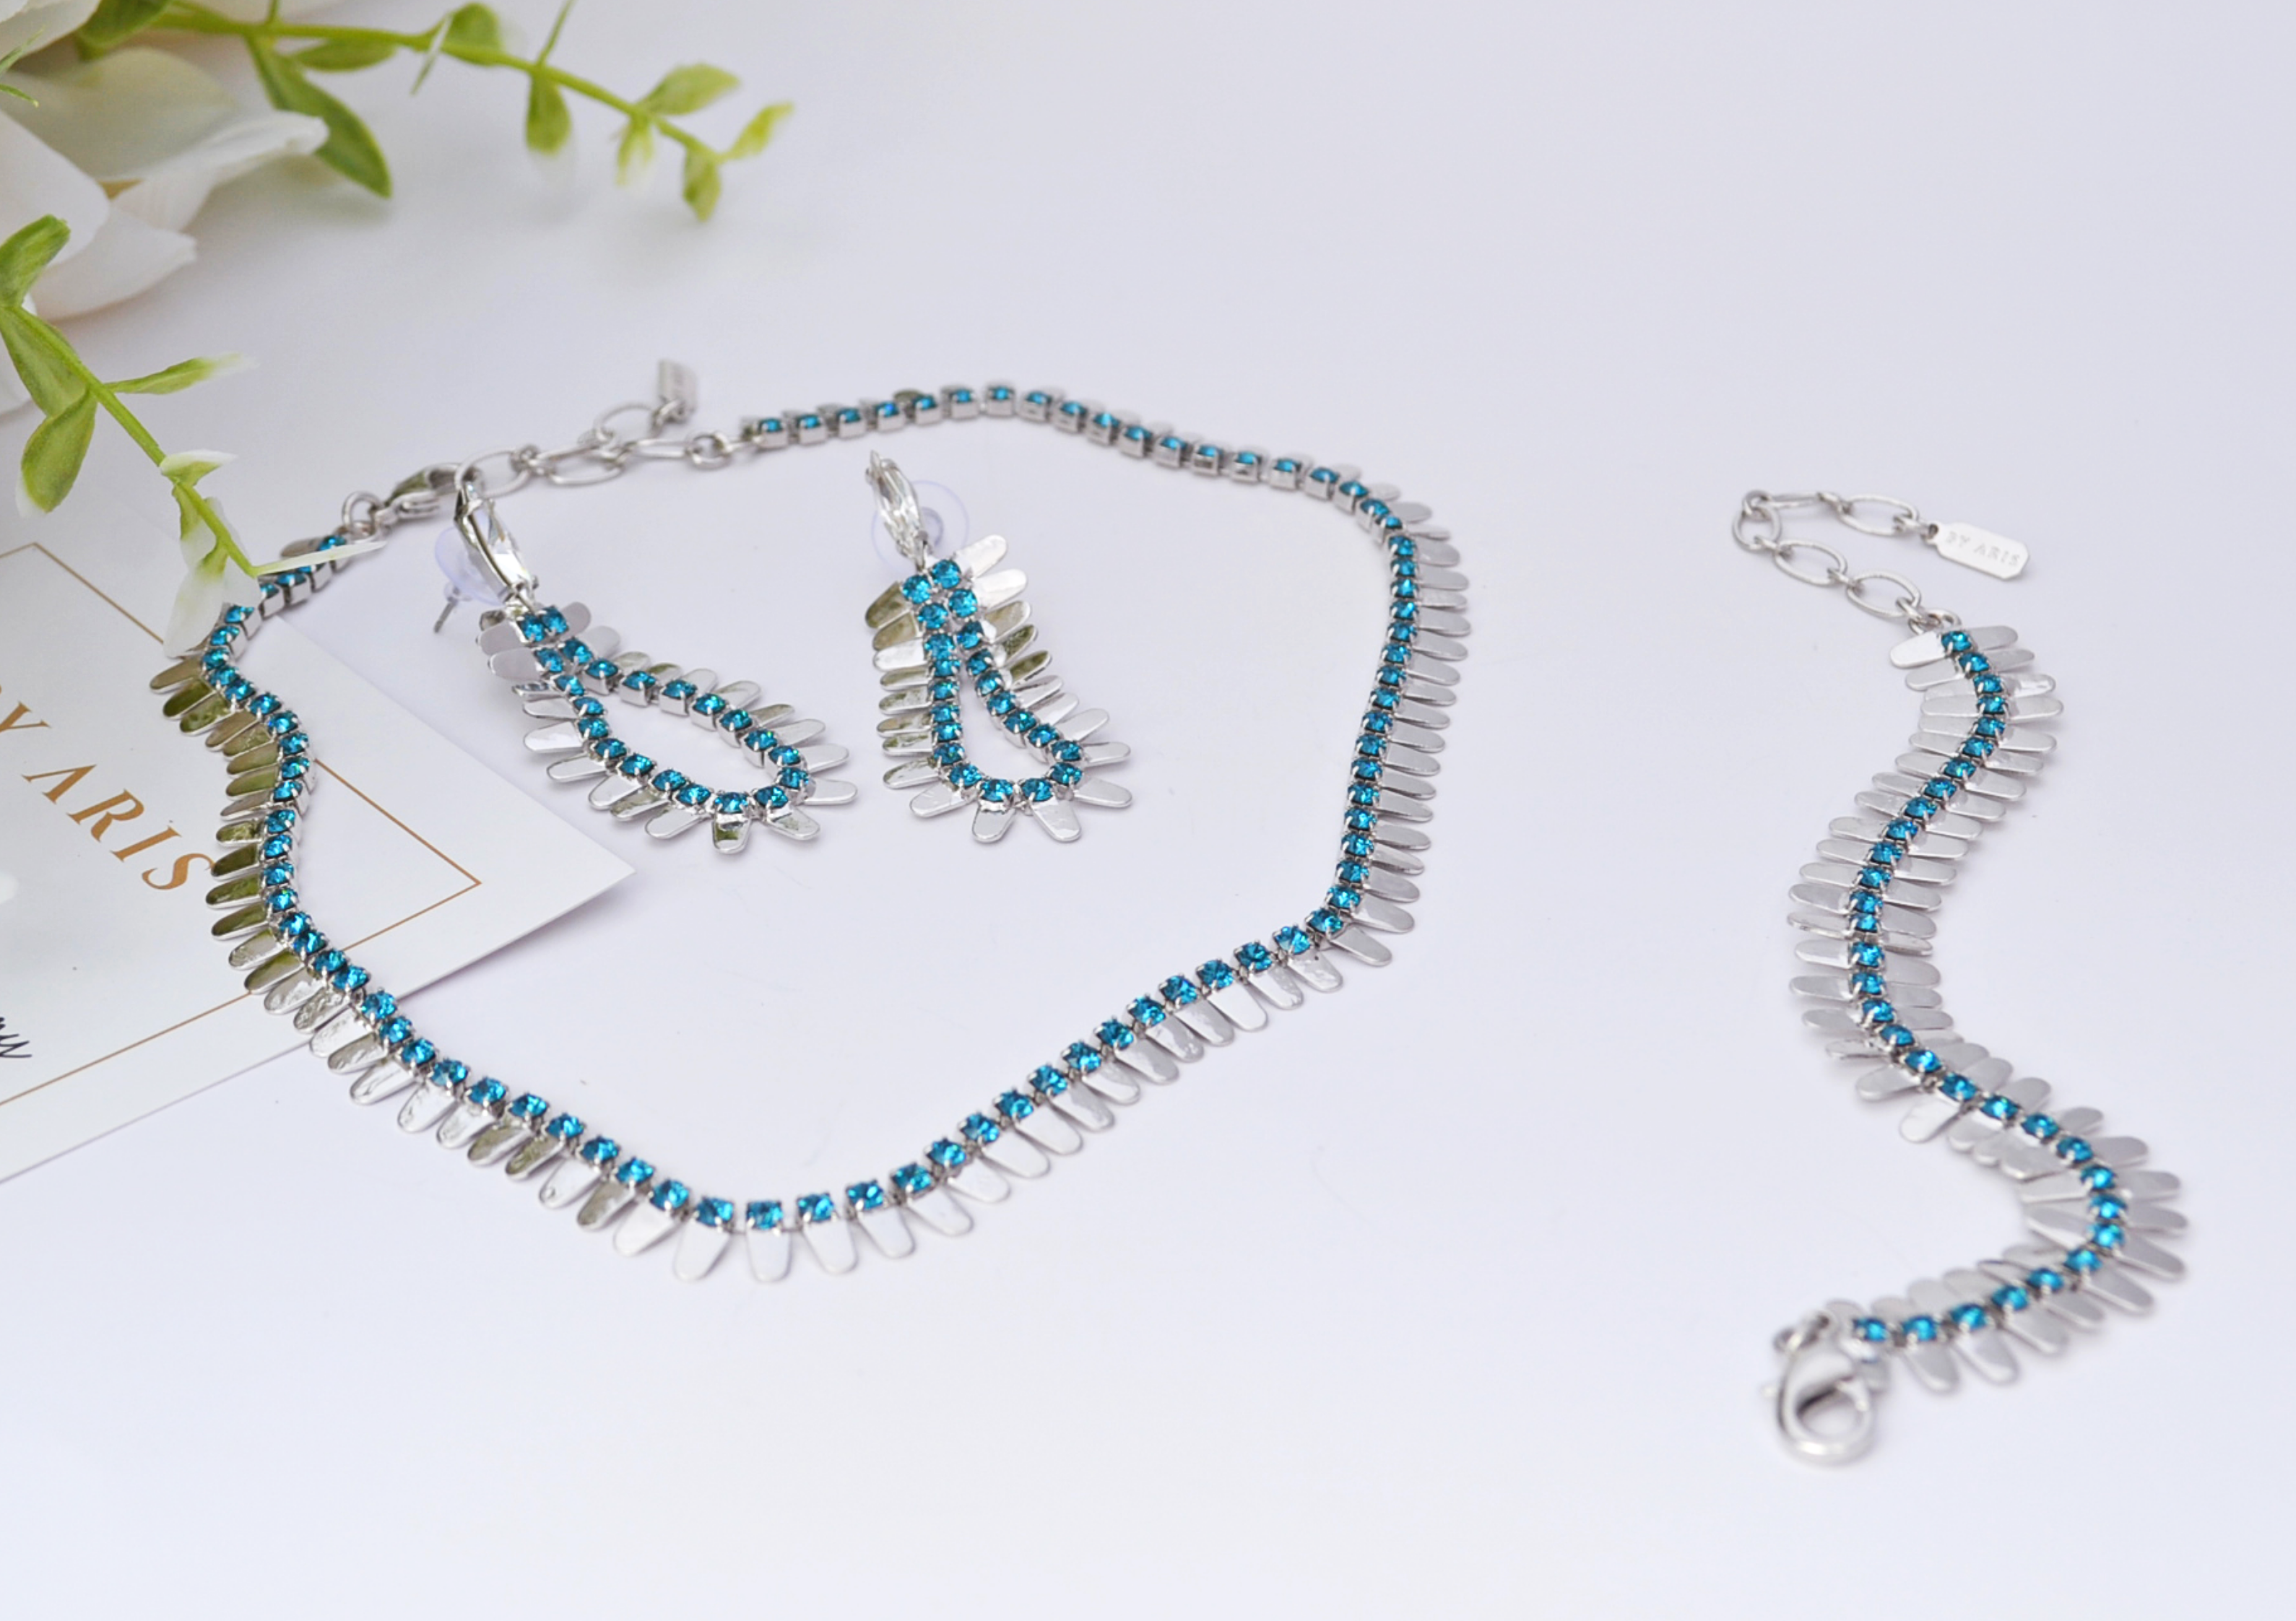 Dainty silver necklace set with blue crystals